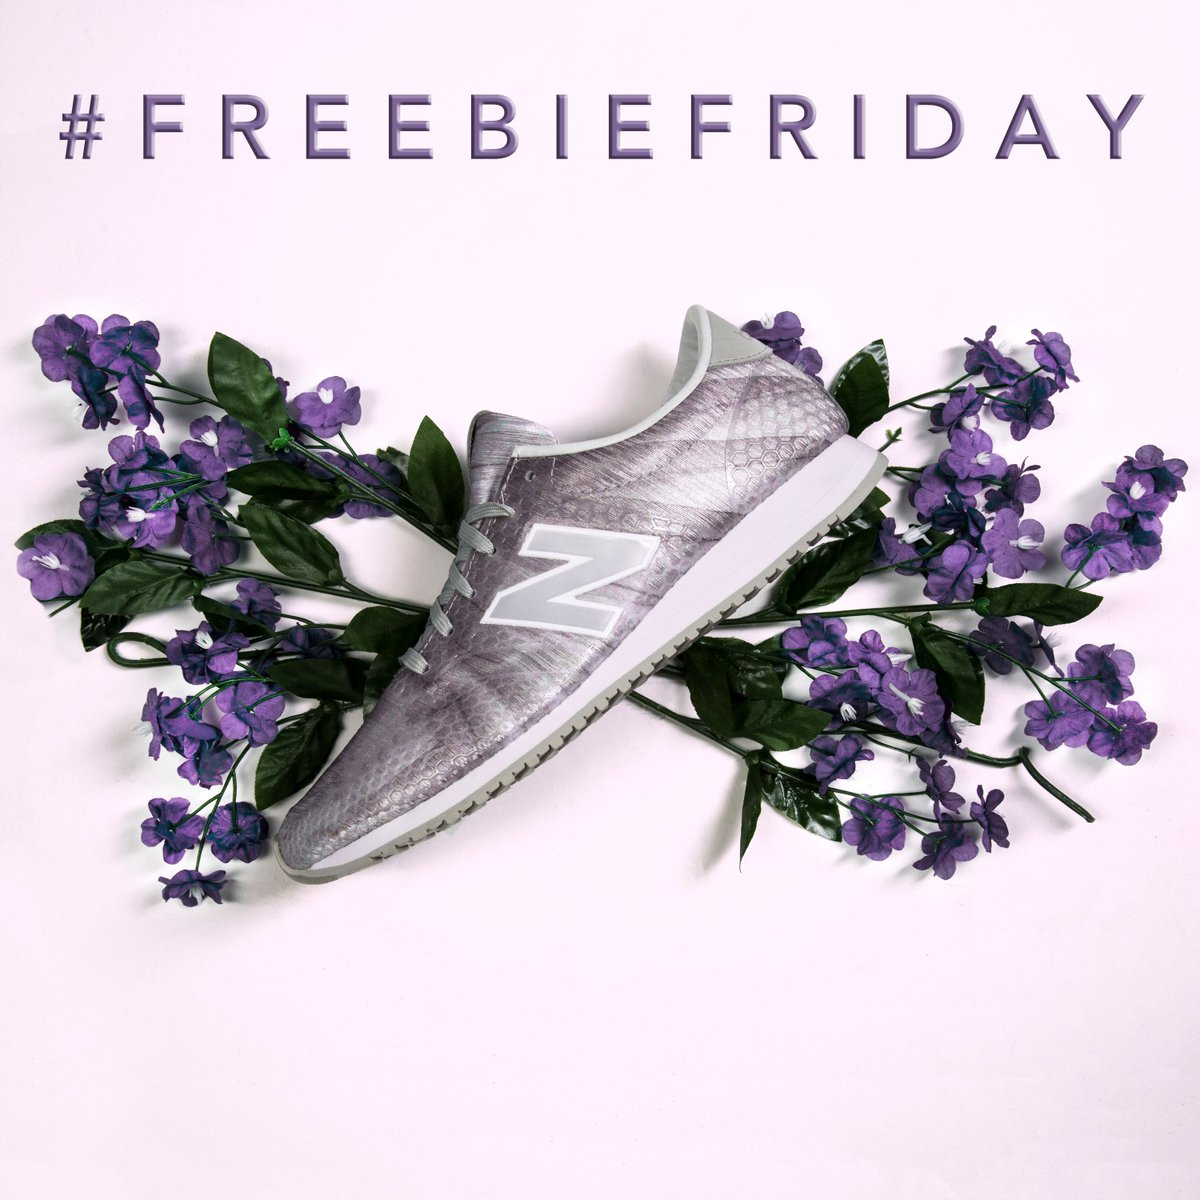 d5945ed33 #FreebieFriday FOLLOW & RT for a chance to win this pair of New Balance  trainers! Comp ends at 5pm - good luck!pic.twitter.com/EcgJEcrGi5